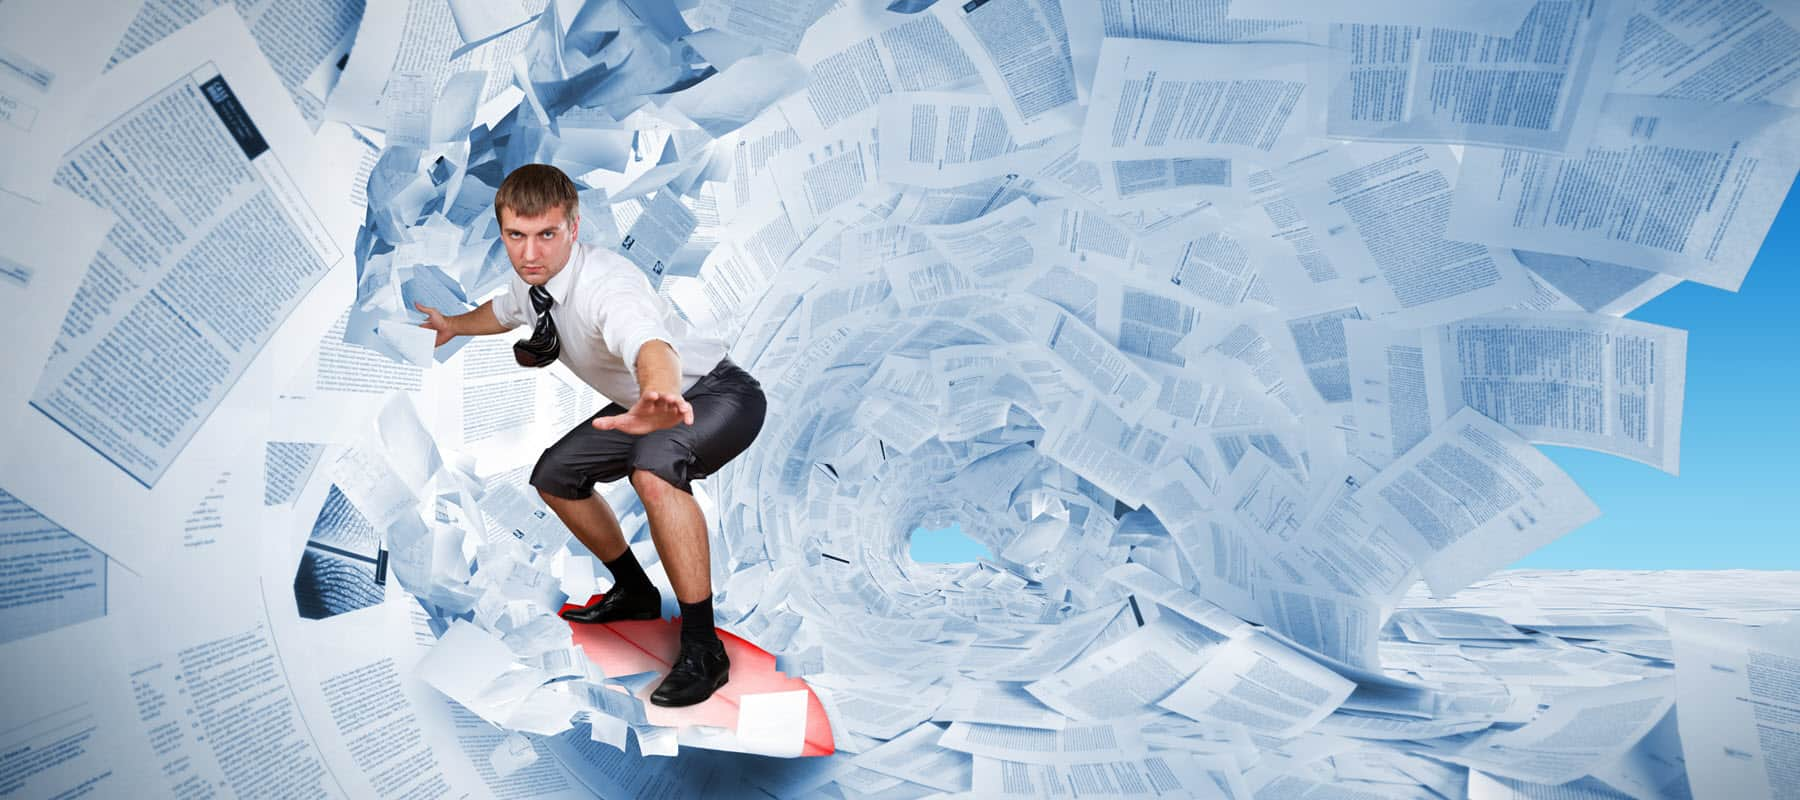 Man surfing on wave of paperwork